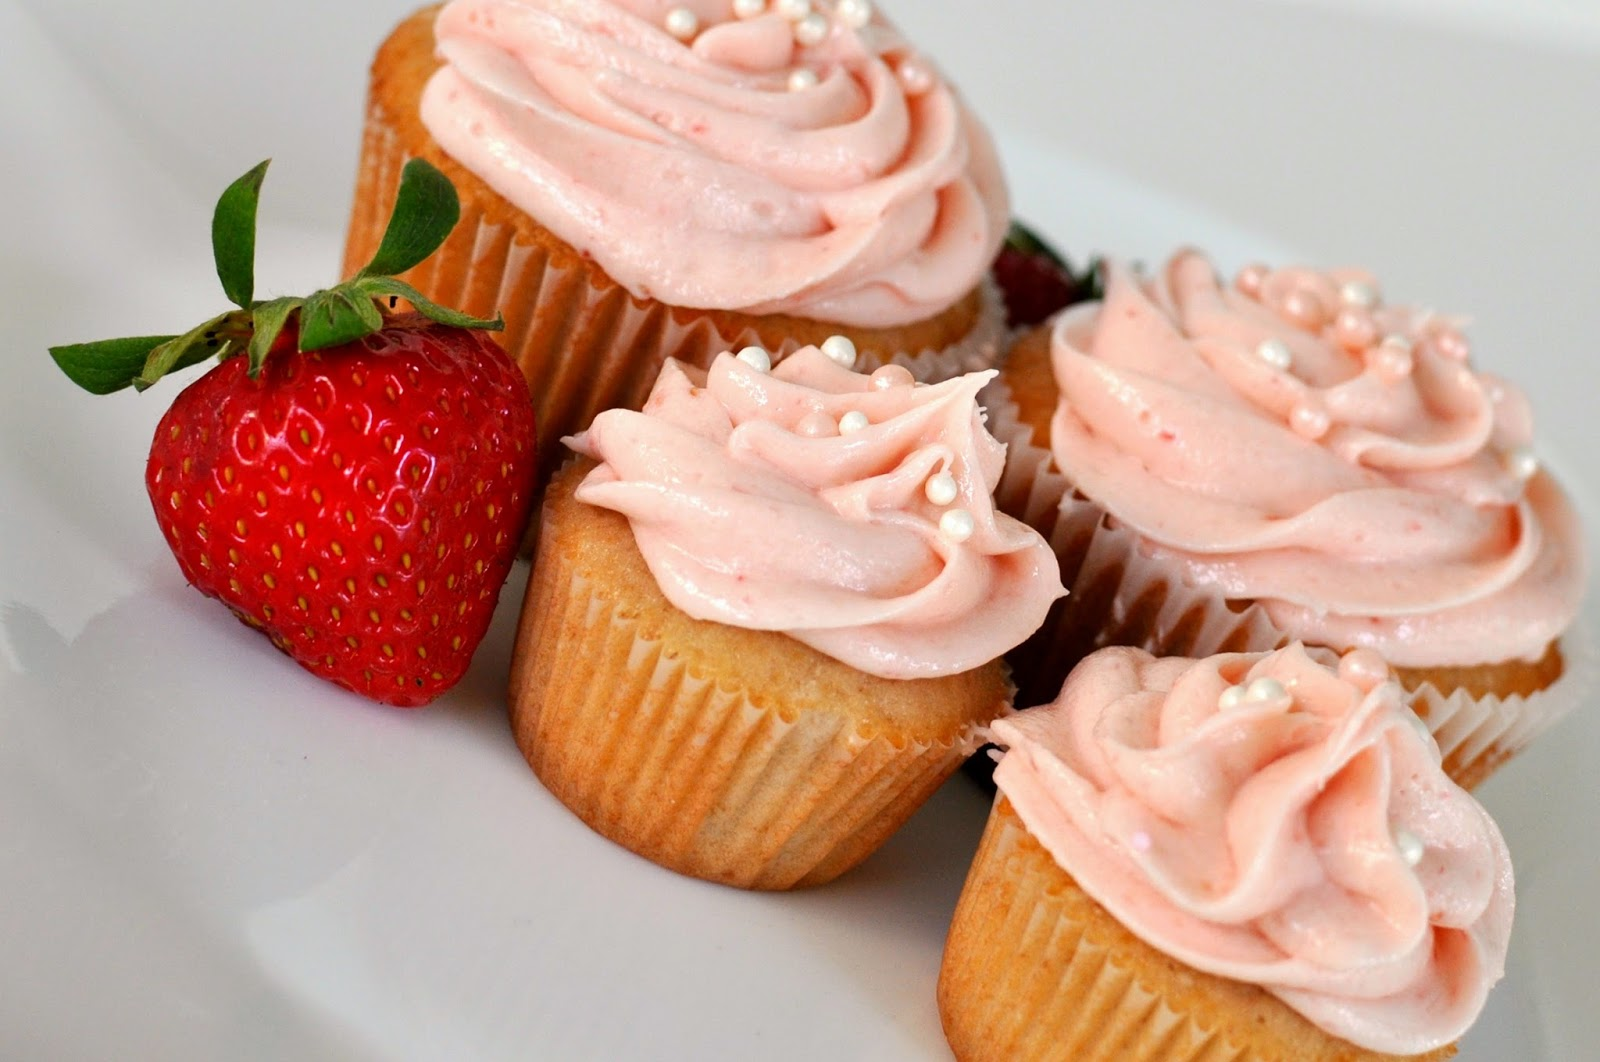 Scrumptious Strawberry Cupcakes from Sprinkles!